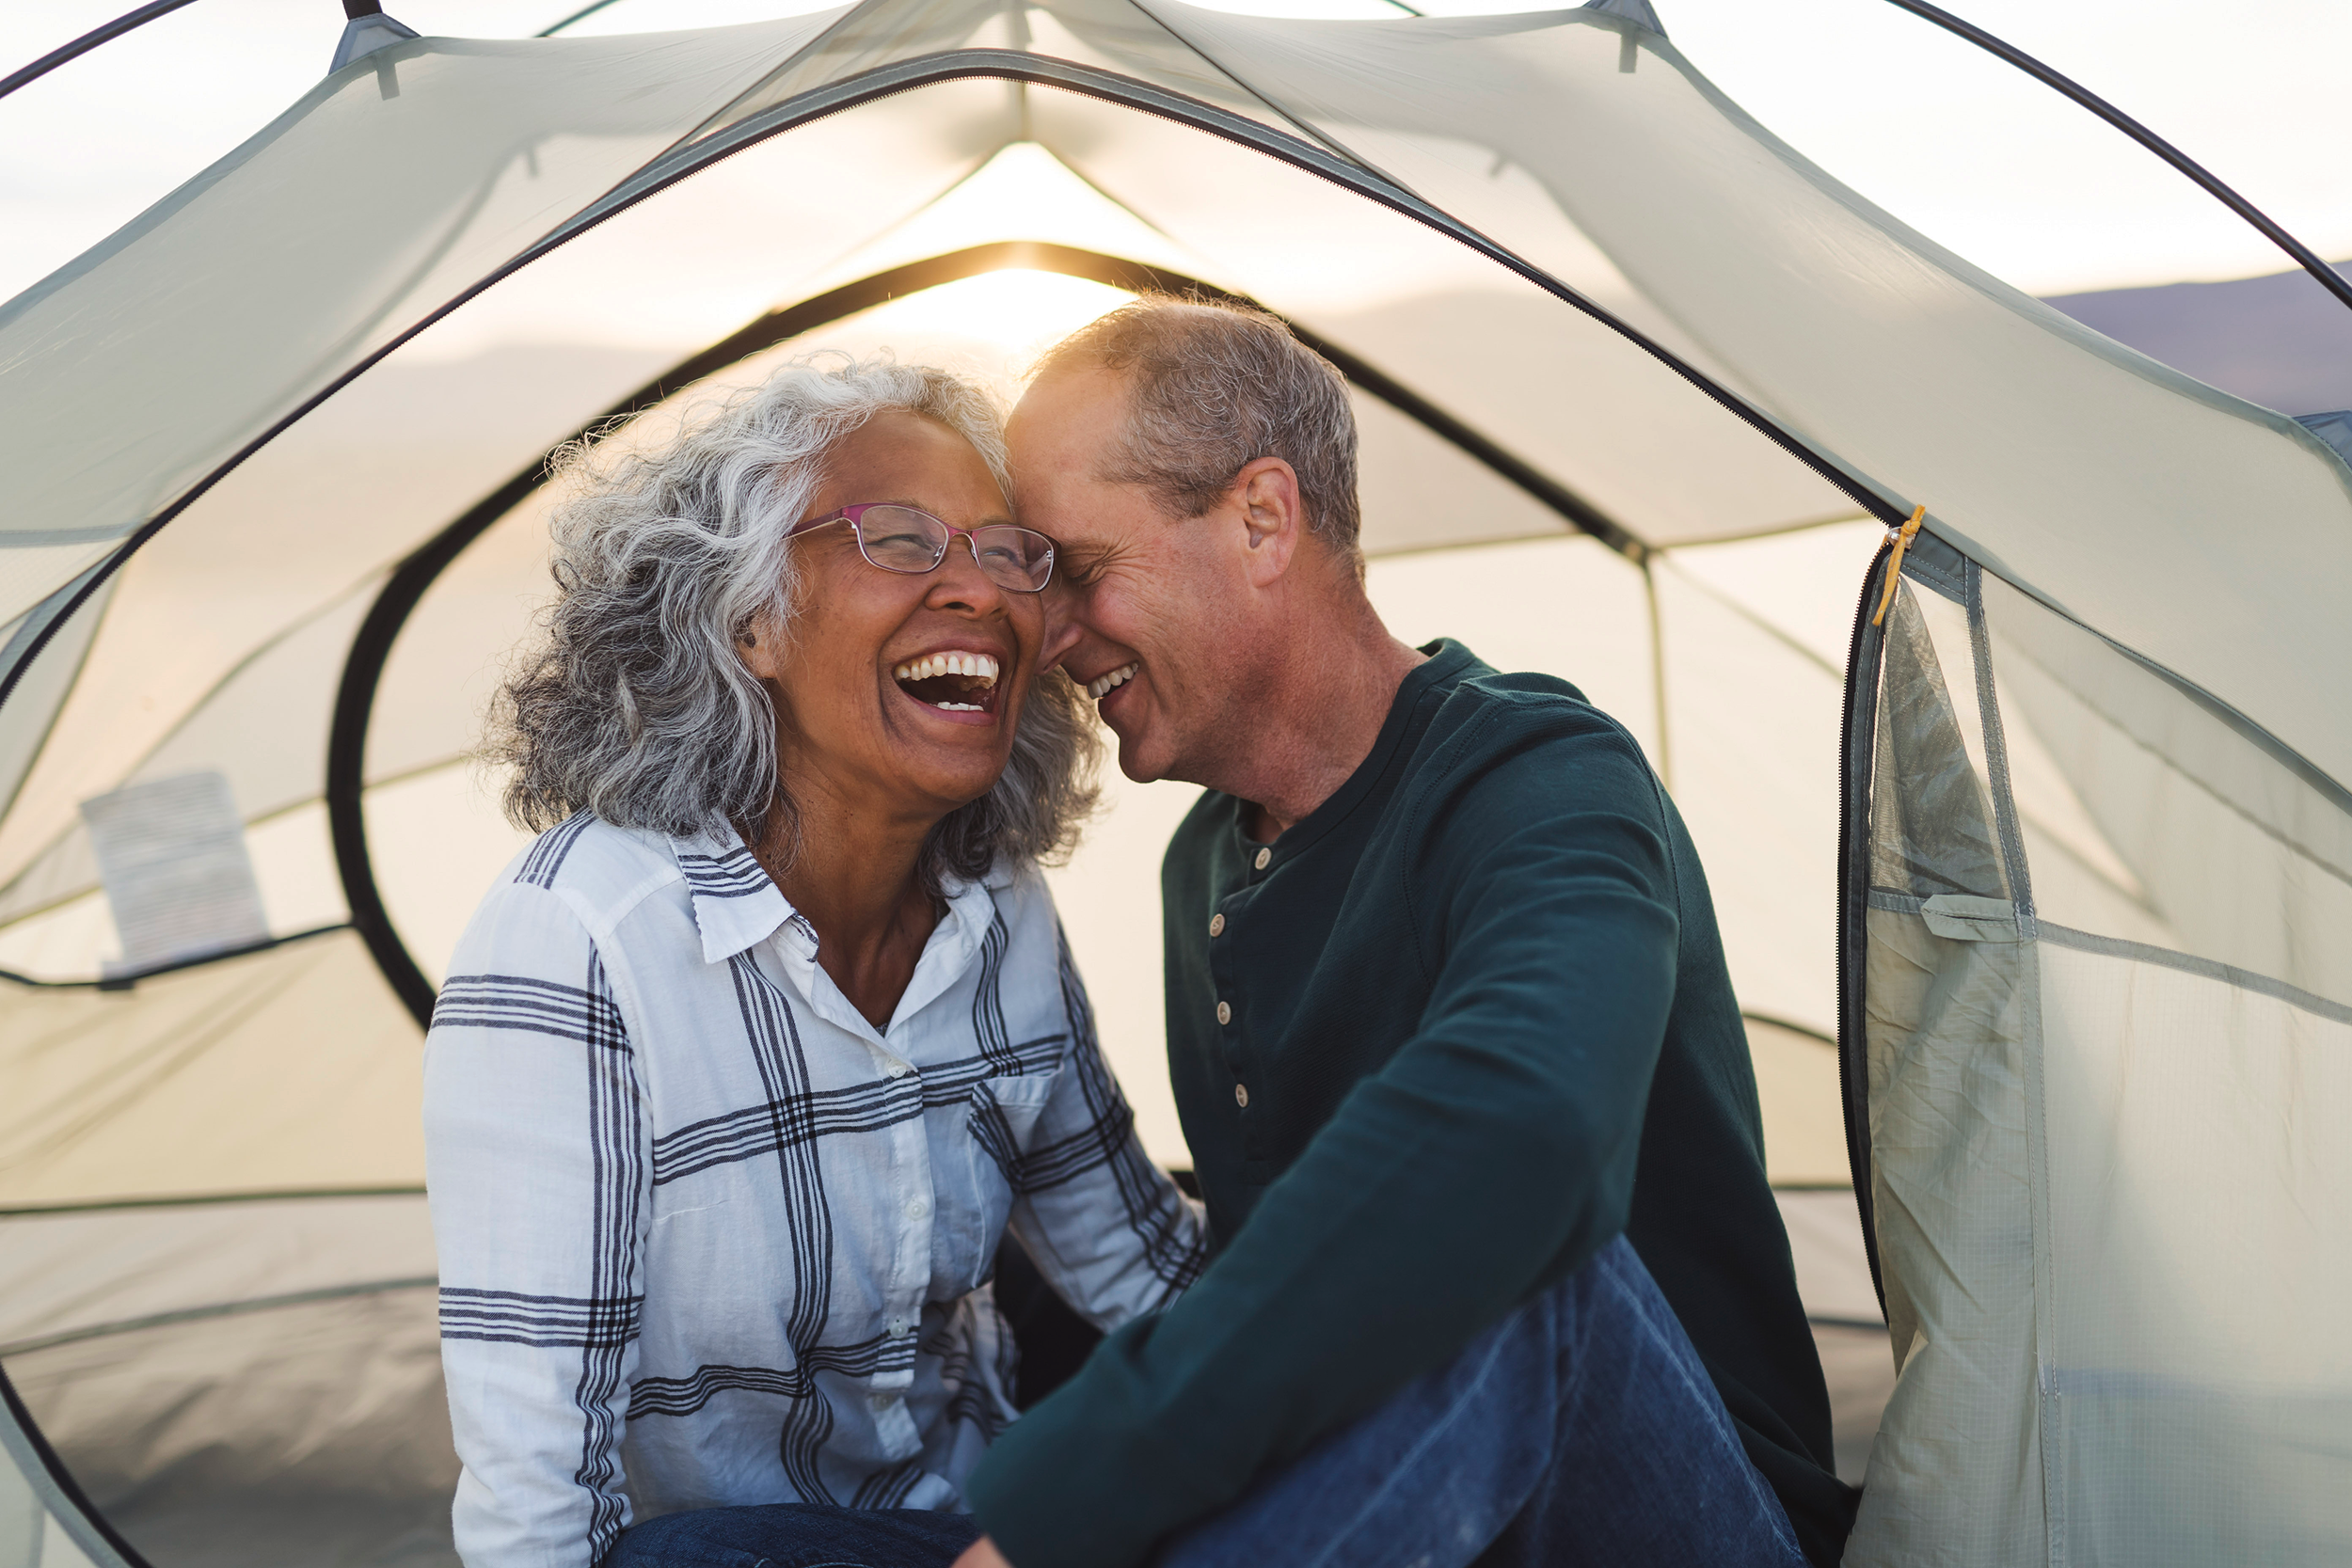 The Top 7 Ways To Improve Your Marriage